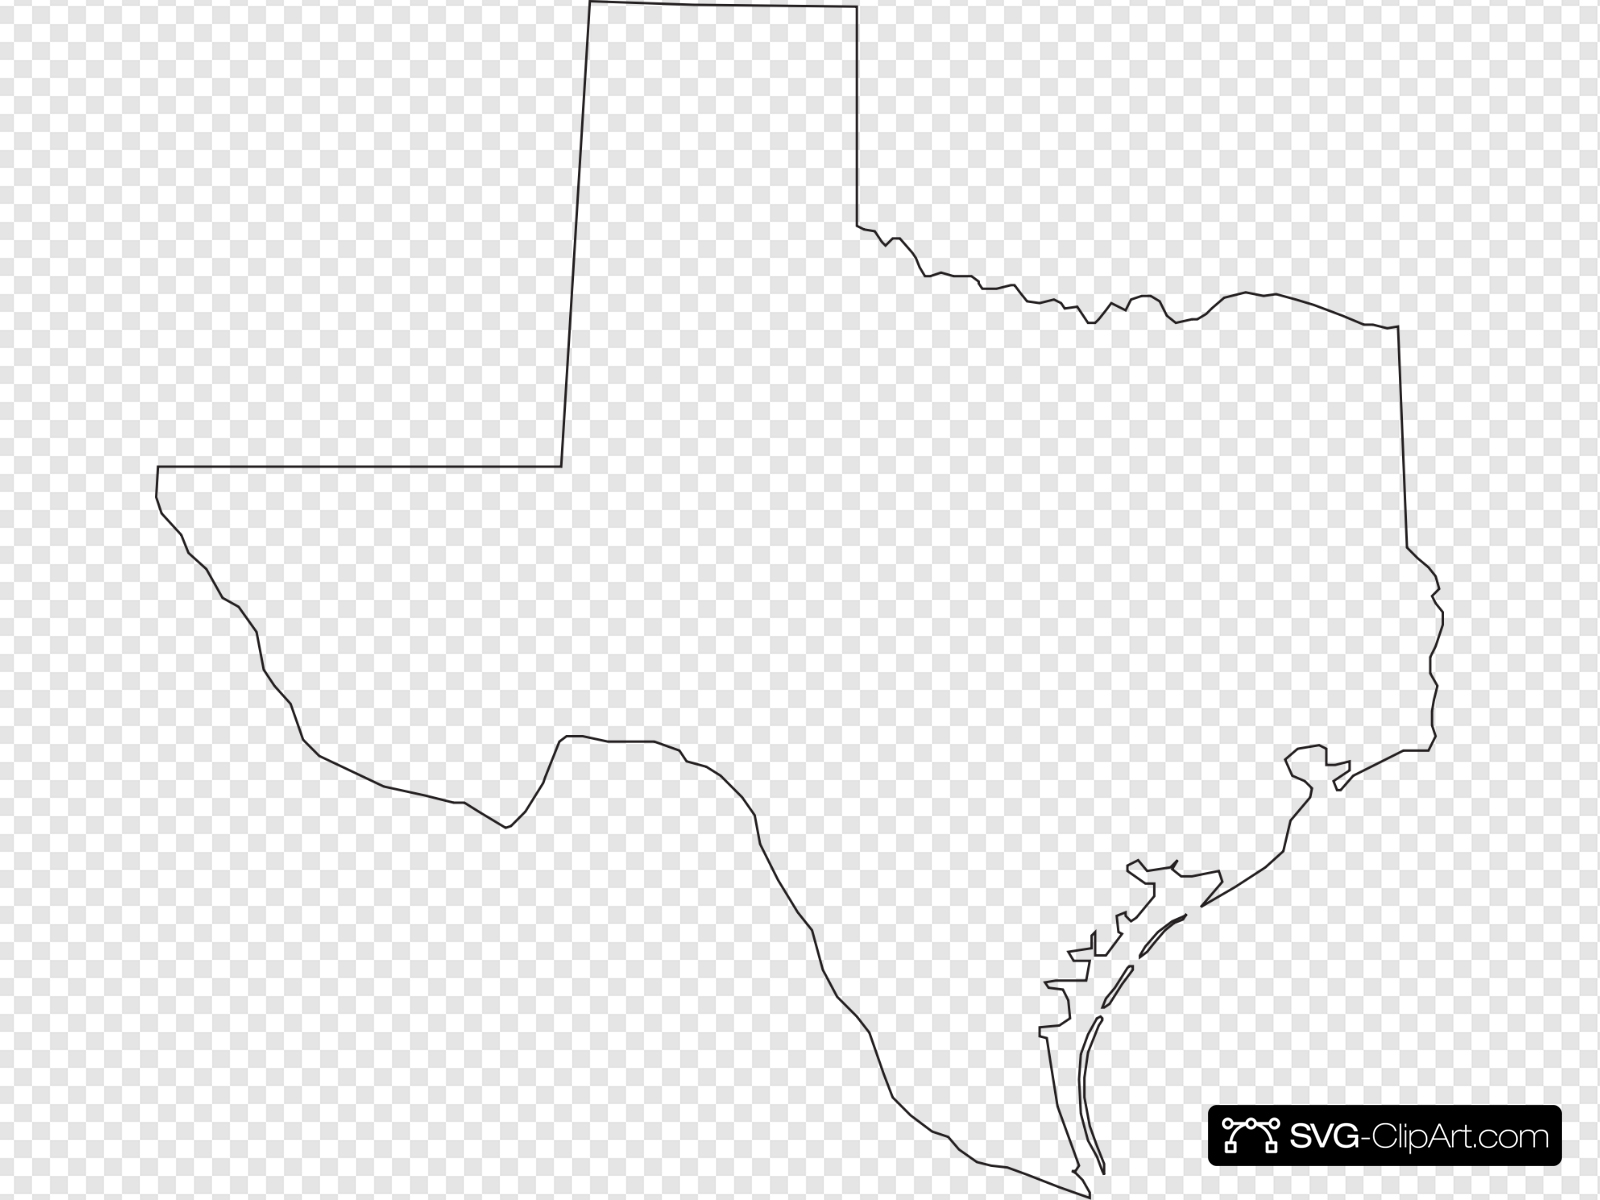 texas outline svg #536, Download drawings